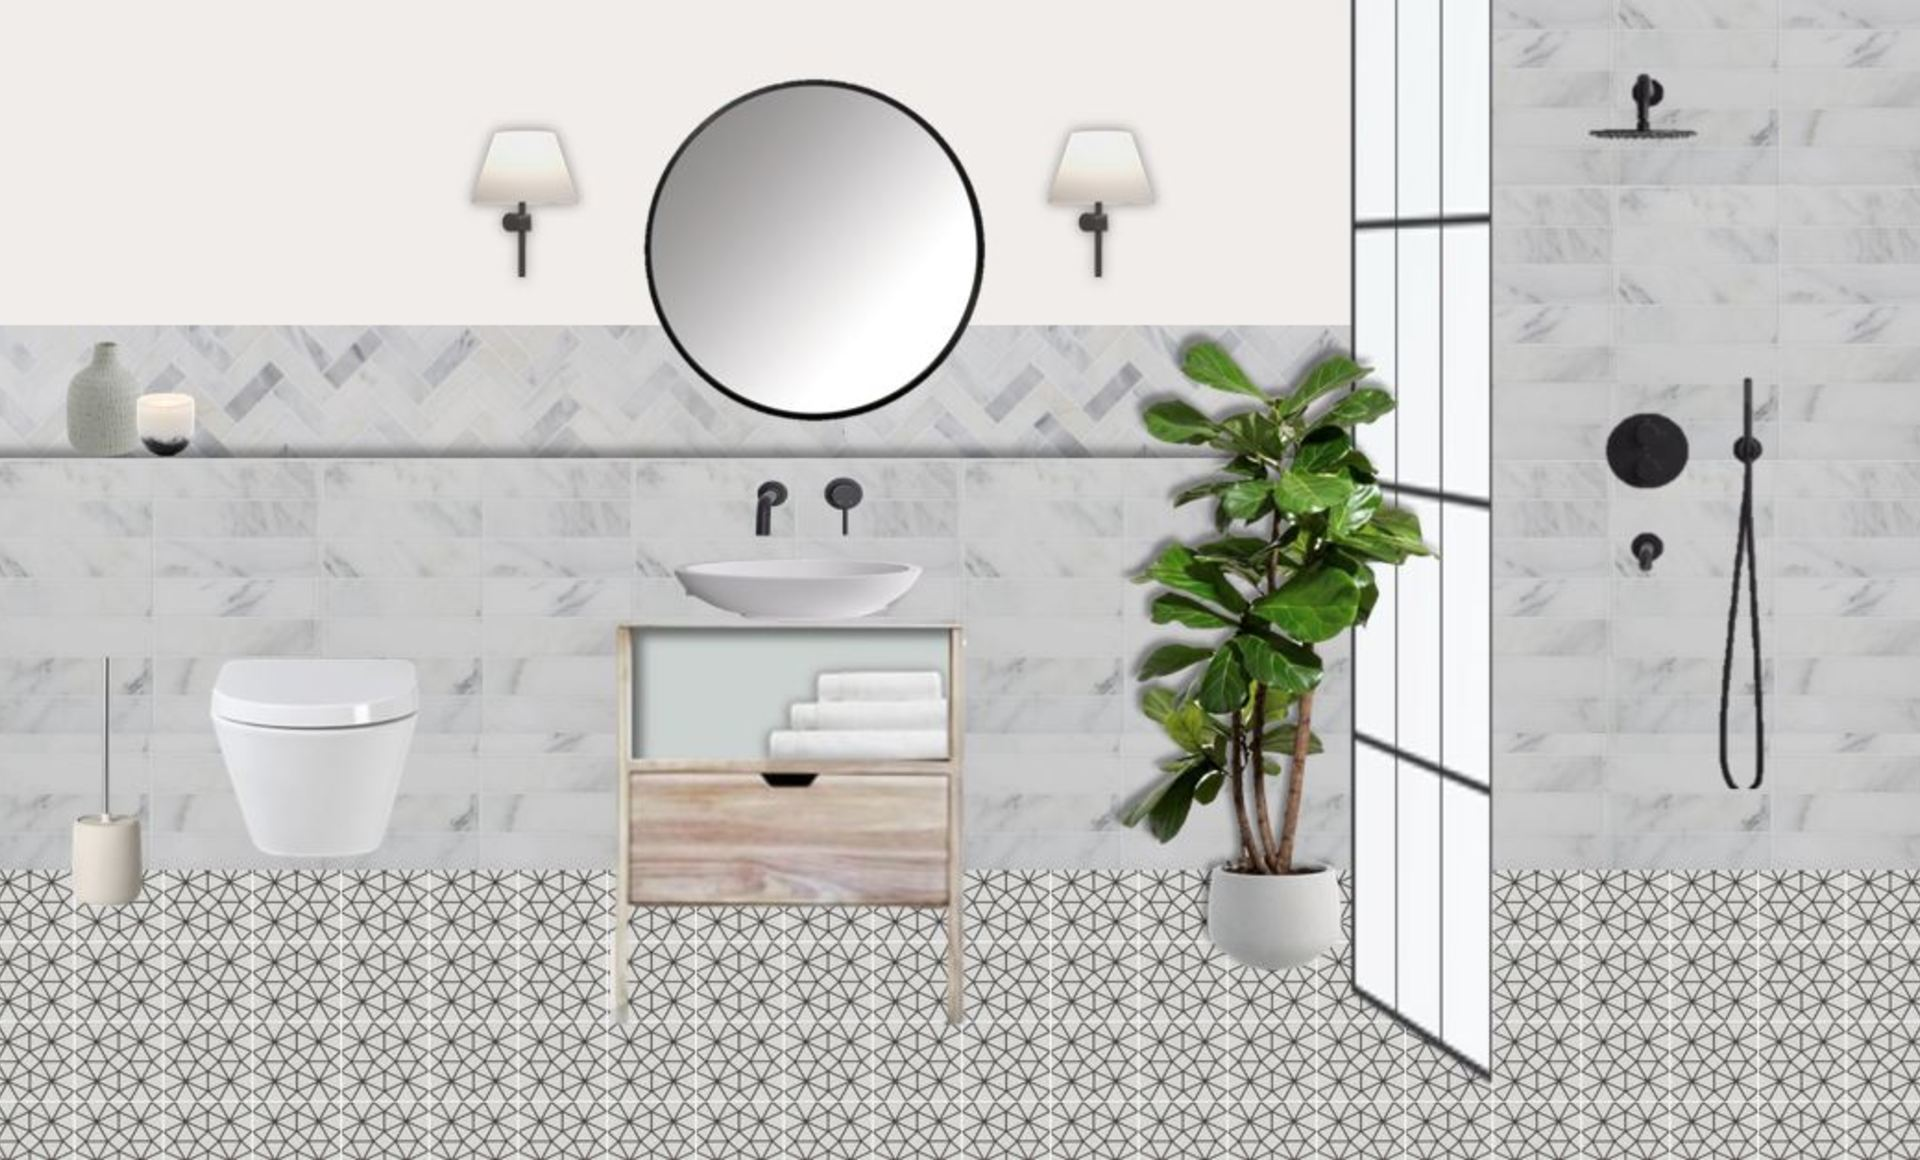 Mix of marble and monochrome tiles, paired with wooden and black elements, to create a beautiful modern and tranquil bathroom